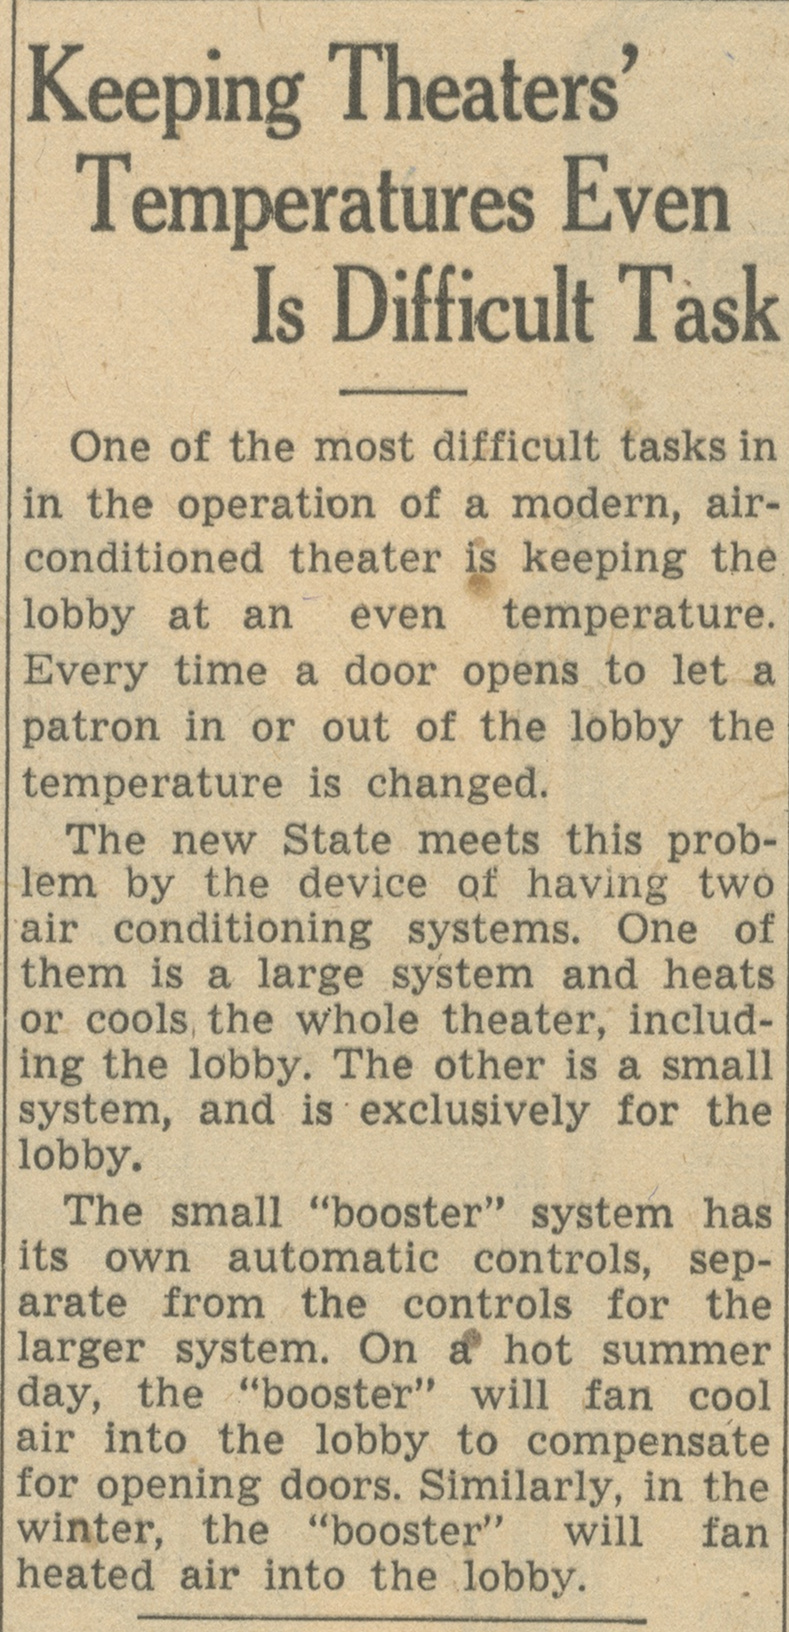 Keeping Theaters' Temperatures Even Is Difficult Task image